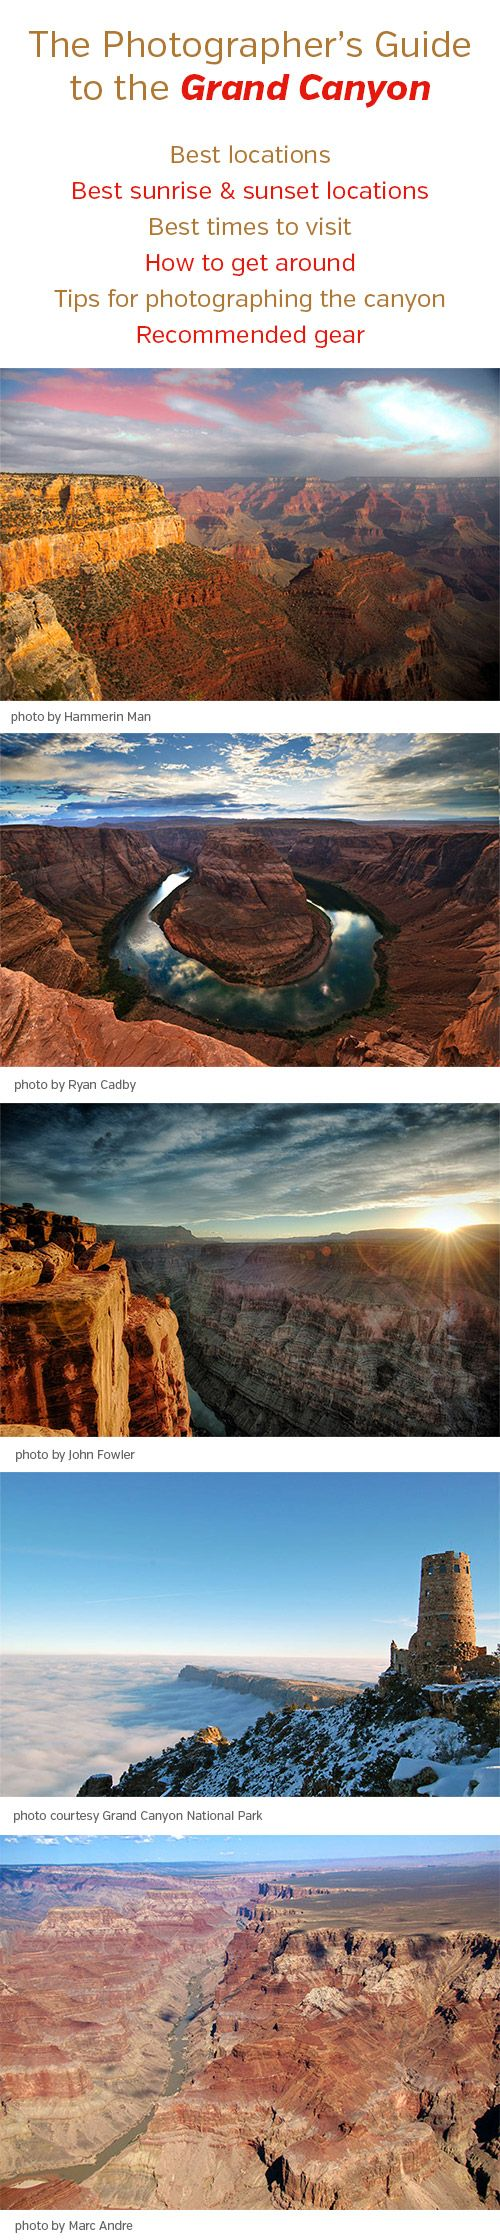 Photographer's Guide to the Grand Canyon | LoadedLandscapes.com | #photography #landscape #nature